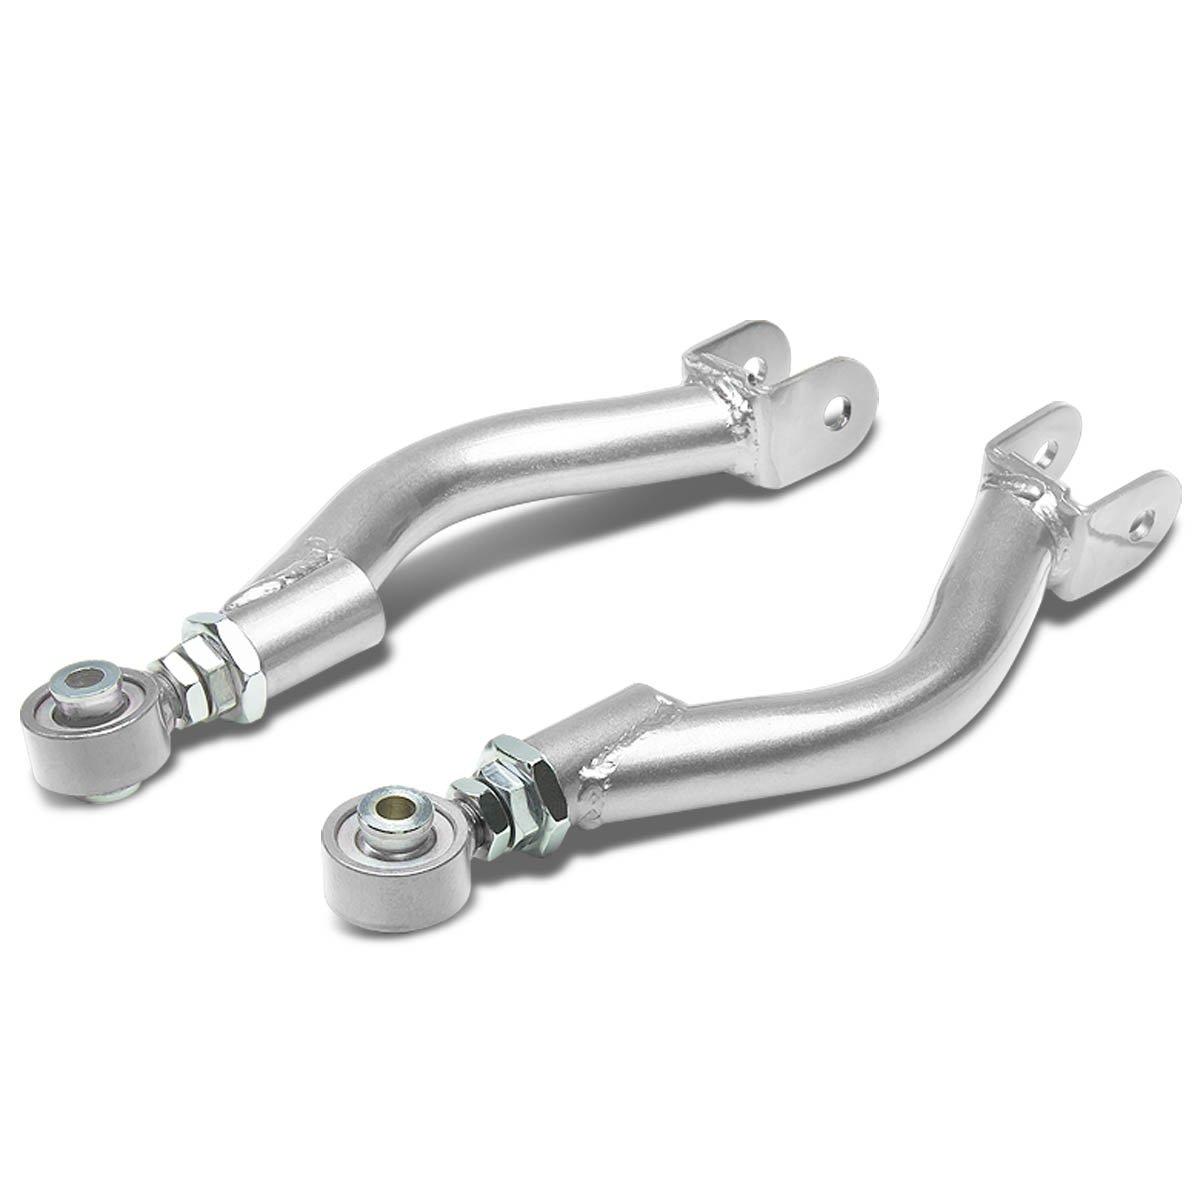 Silver R33 R34 For Nissan 240SX Silvia S14 S15 GT-R Rear Upper Camber Kit Set